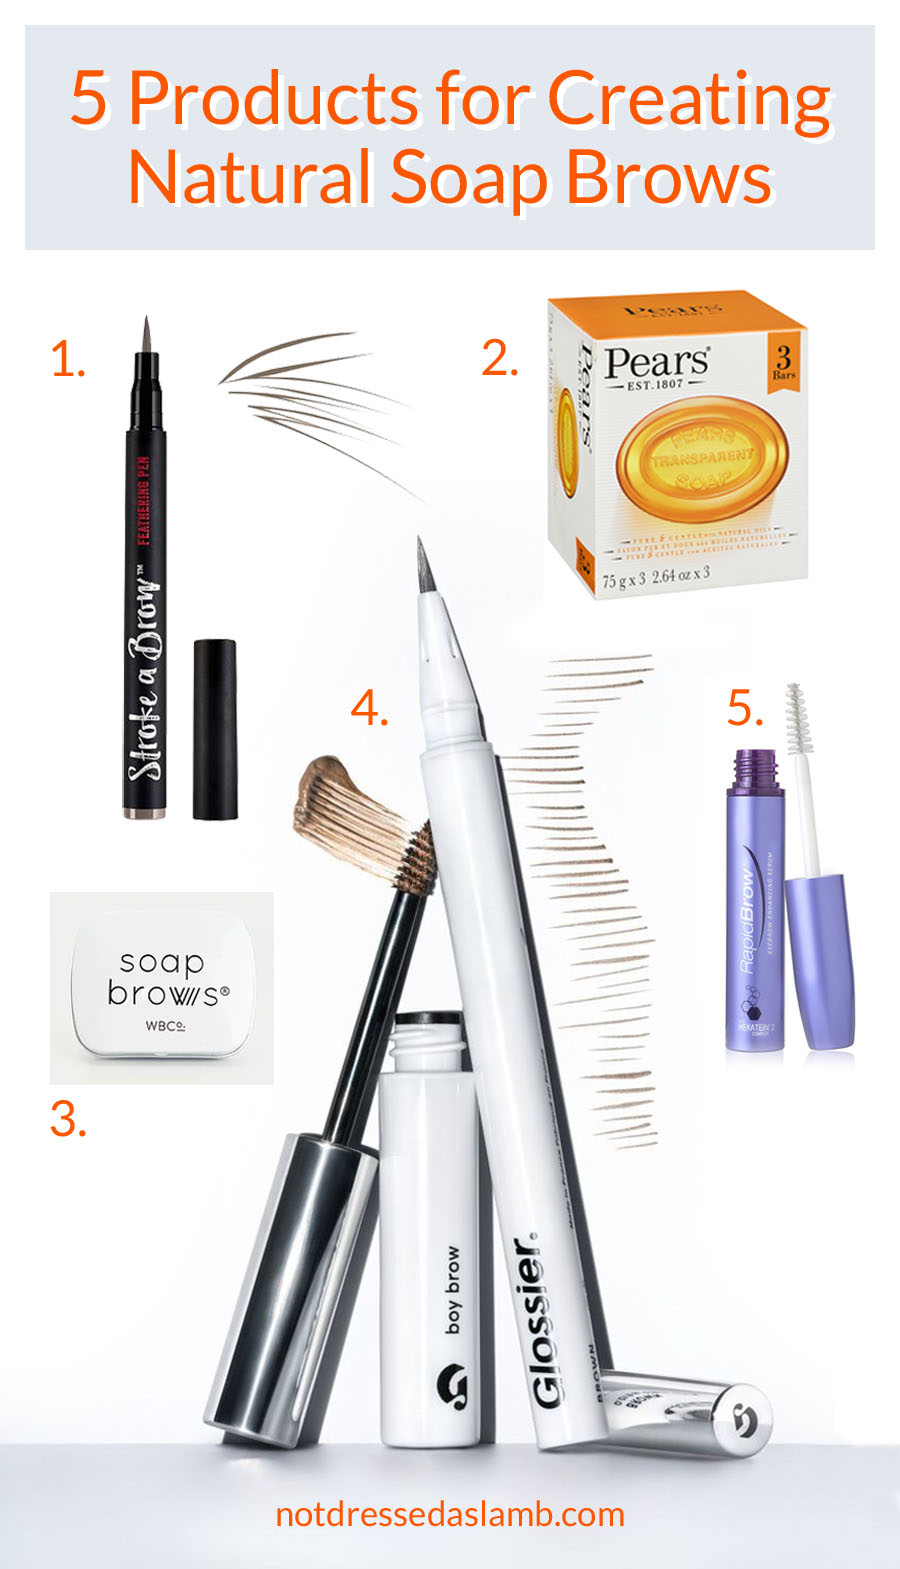 5 Product for Creating Natural Soap Brows   Not Dressed As Lamb